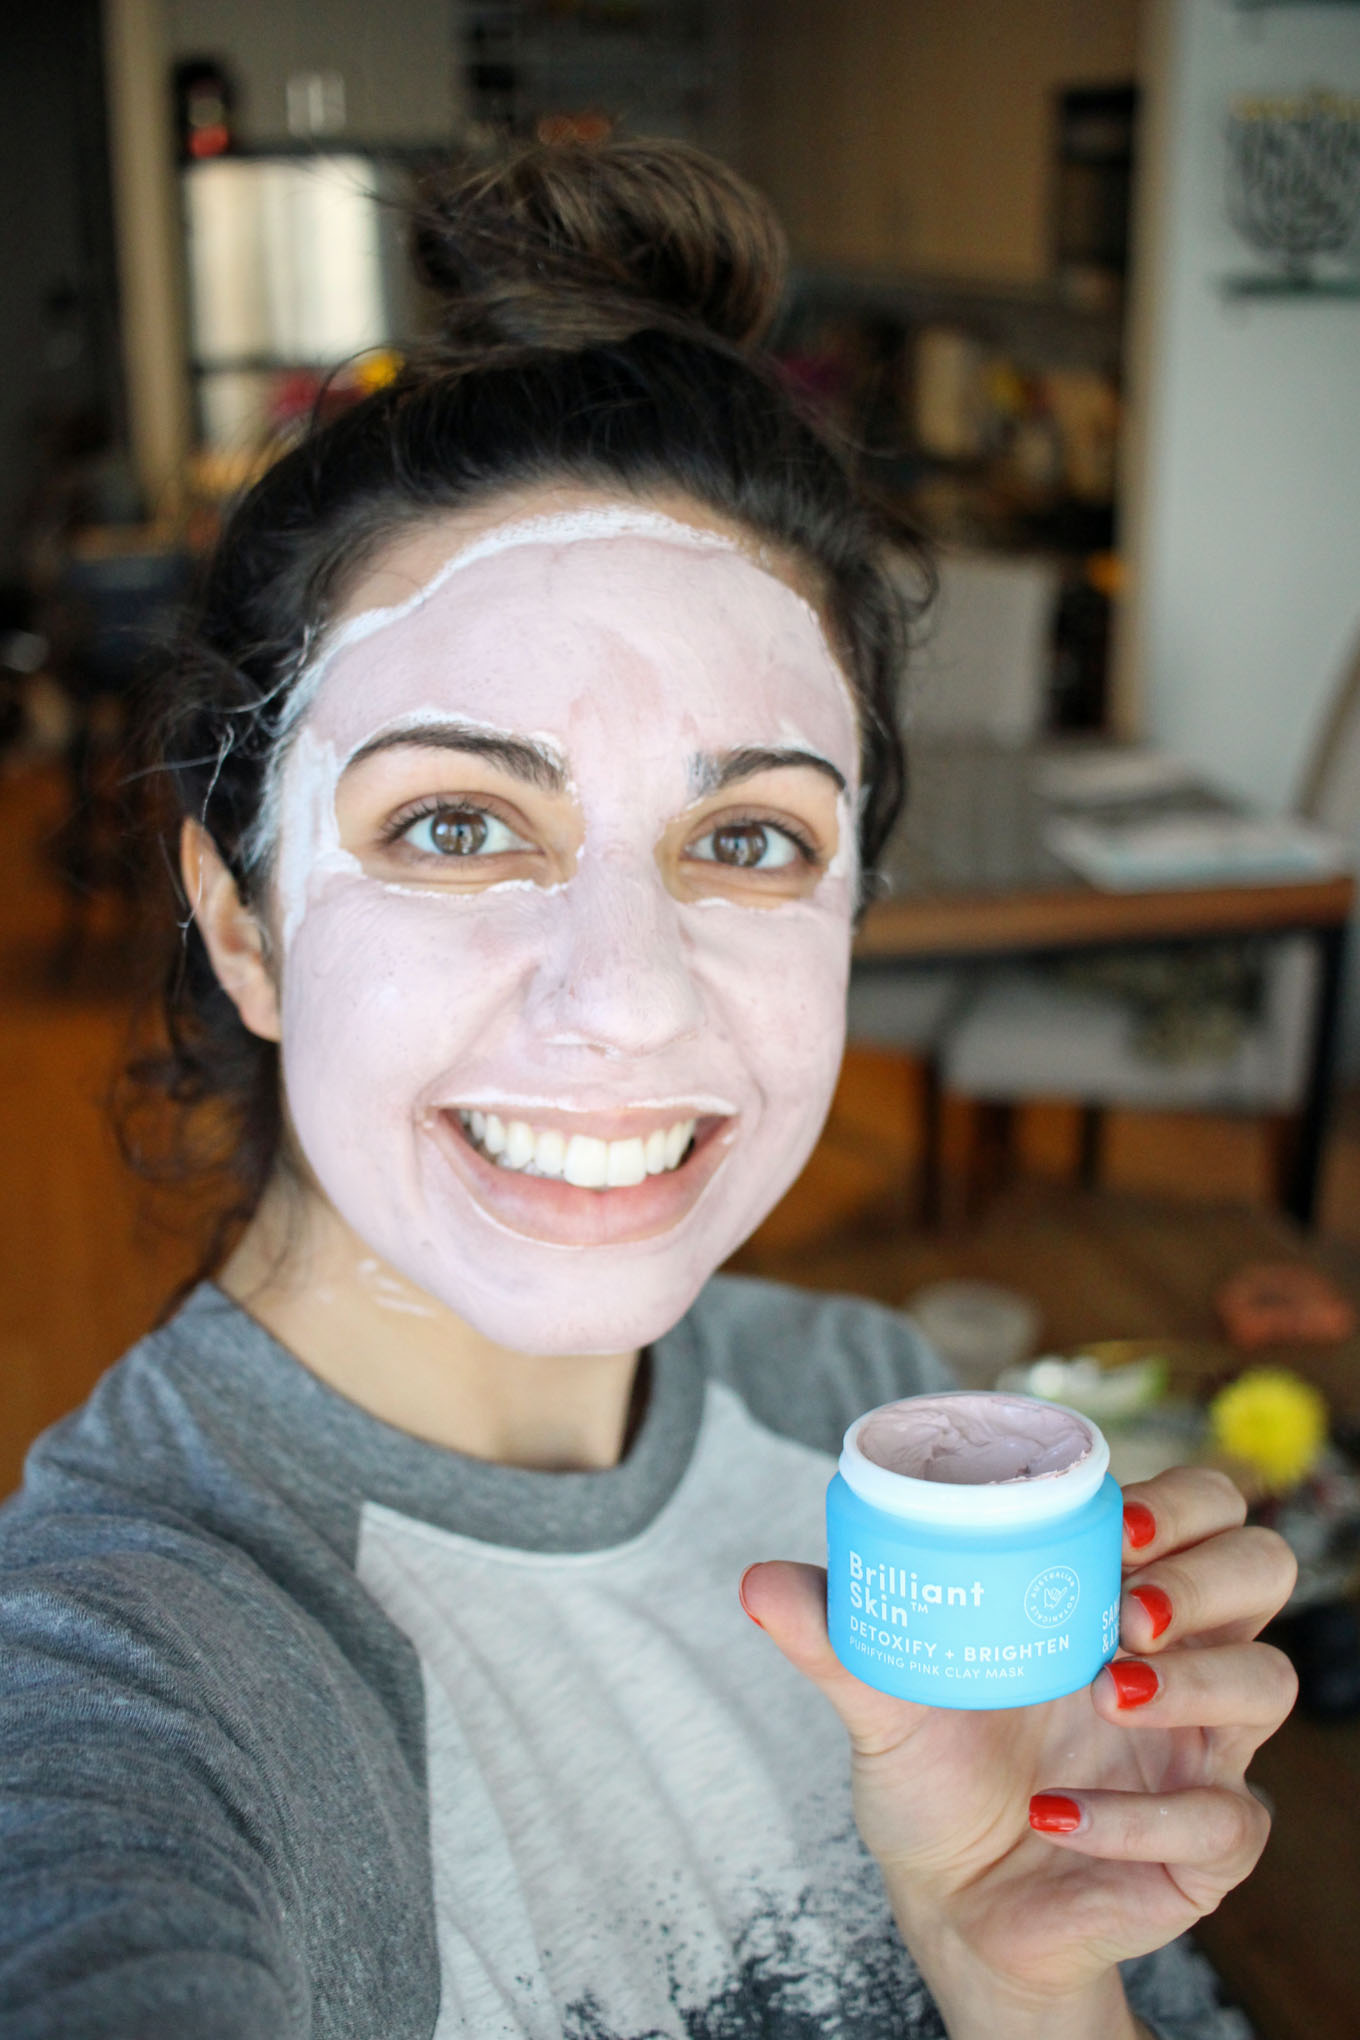 Lifestyle blogger Roxanne of Glass of Glam's Sand and Sky Pink Mask Review - Sand & Sky Australian Pink Clay Mask Review b y Dc beauty blogger Glass of Glam - Top 6 Skin Emergency Products by popular Chicago style blogger Glass of Glam